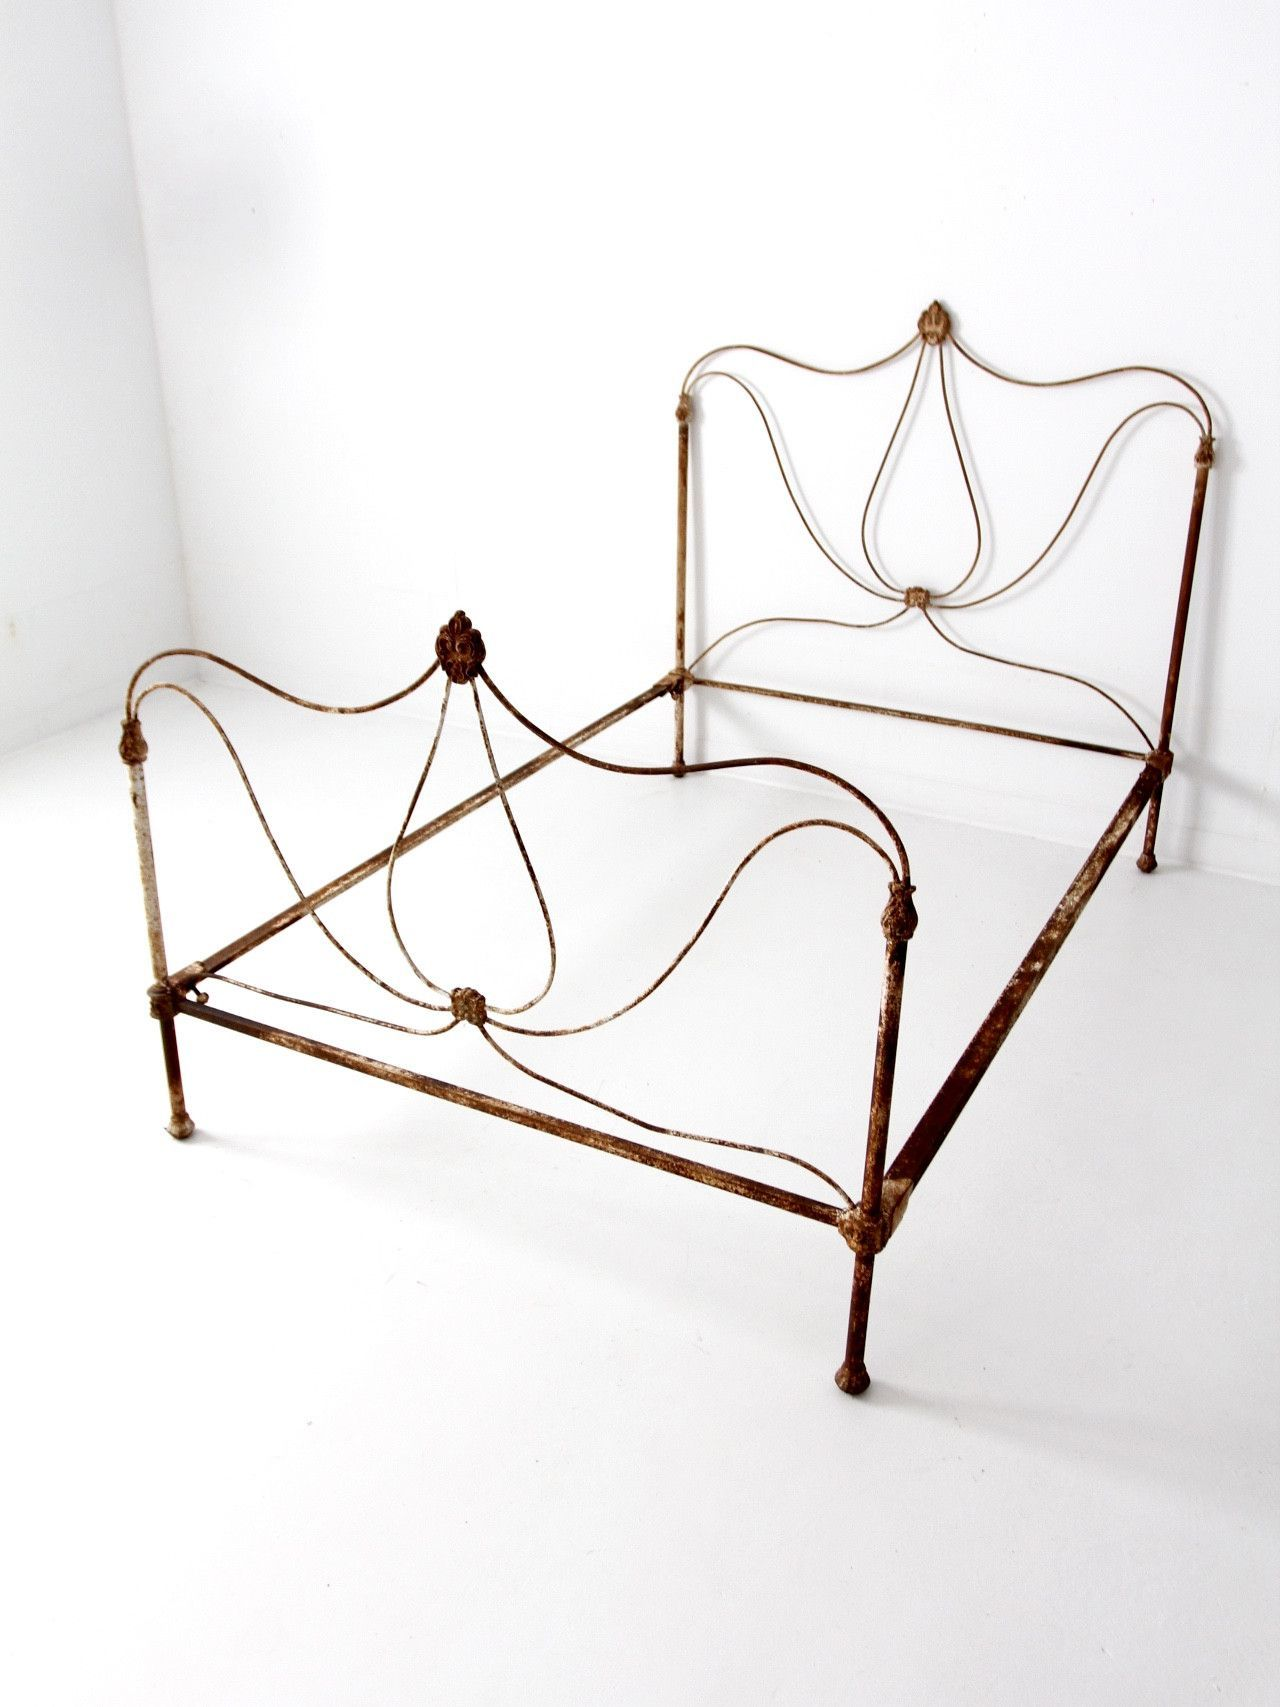 An Antique Iron Bed In The Art Nouveau Style A Double Size Bed Frame With Decorative Headboard Footboard And Angle Iron Bed Antique Iron Beds Iron Bed Frame